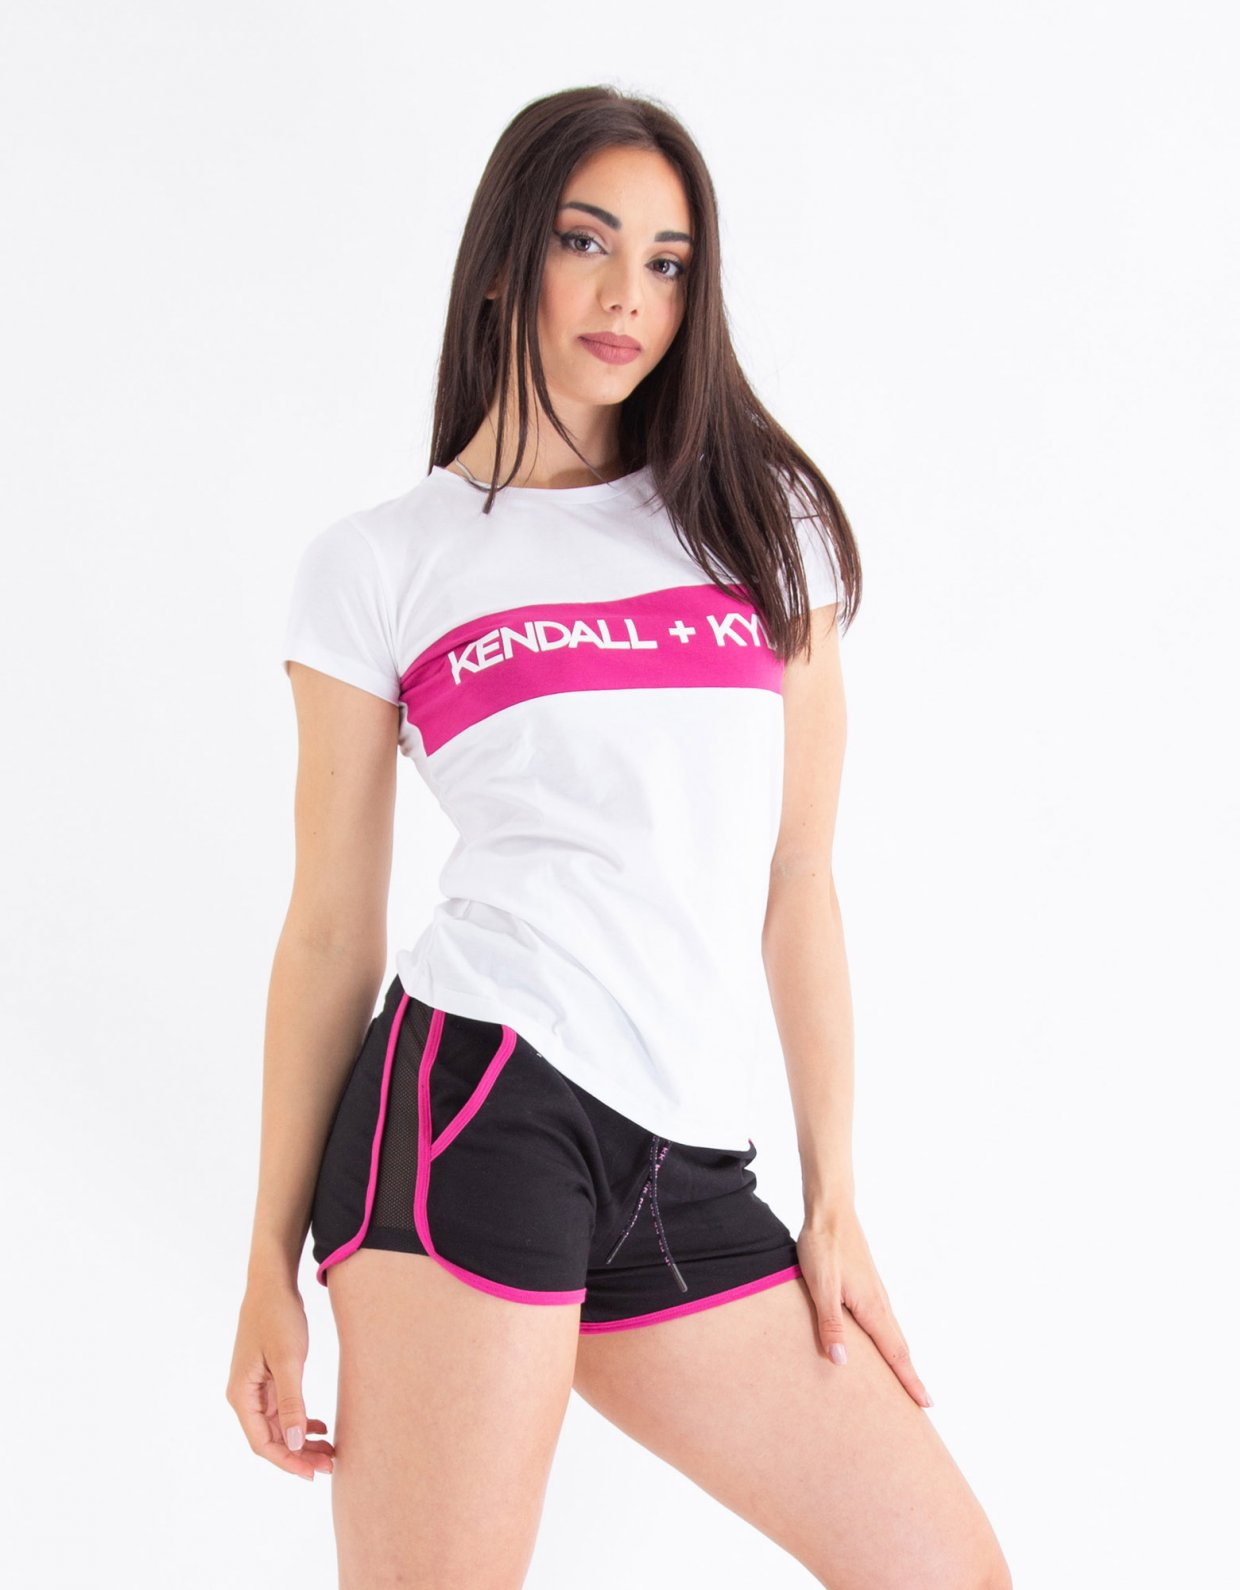 Kendall + Kylie White t-shirt